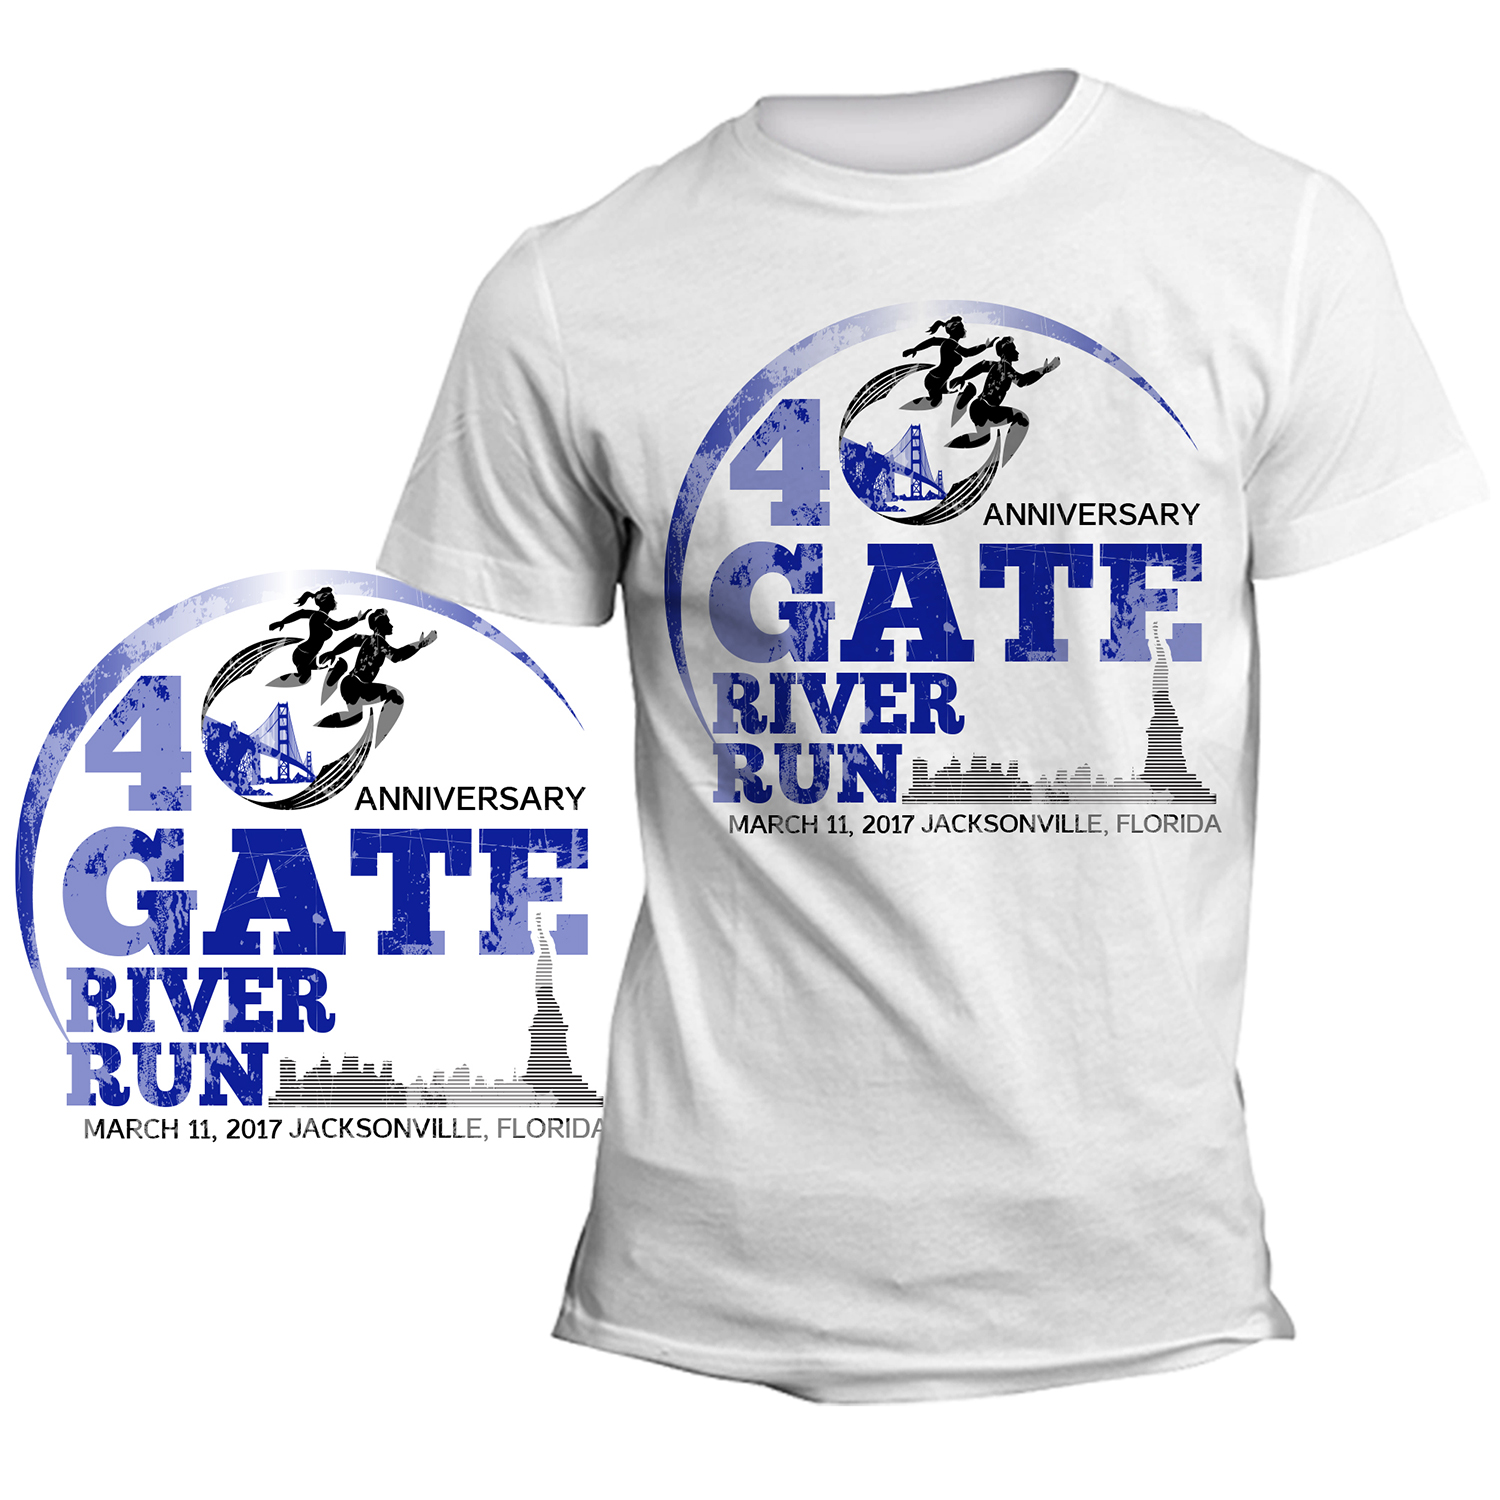 Modern Professional T Shirt Design For Gate Petroleum By Sd